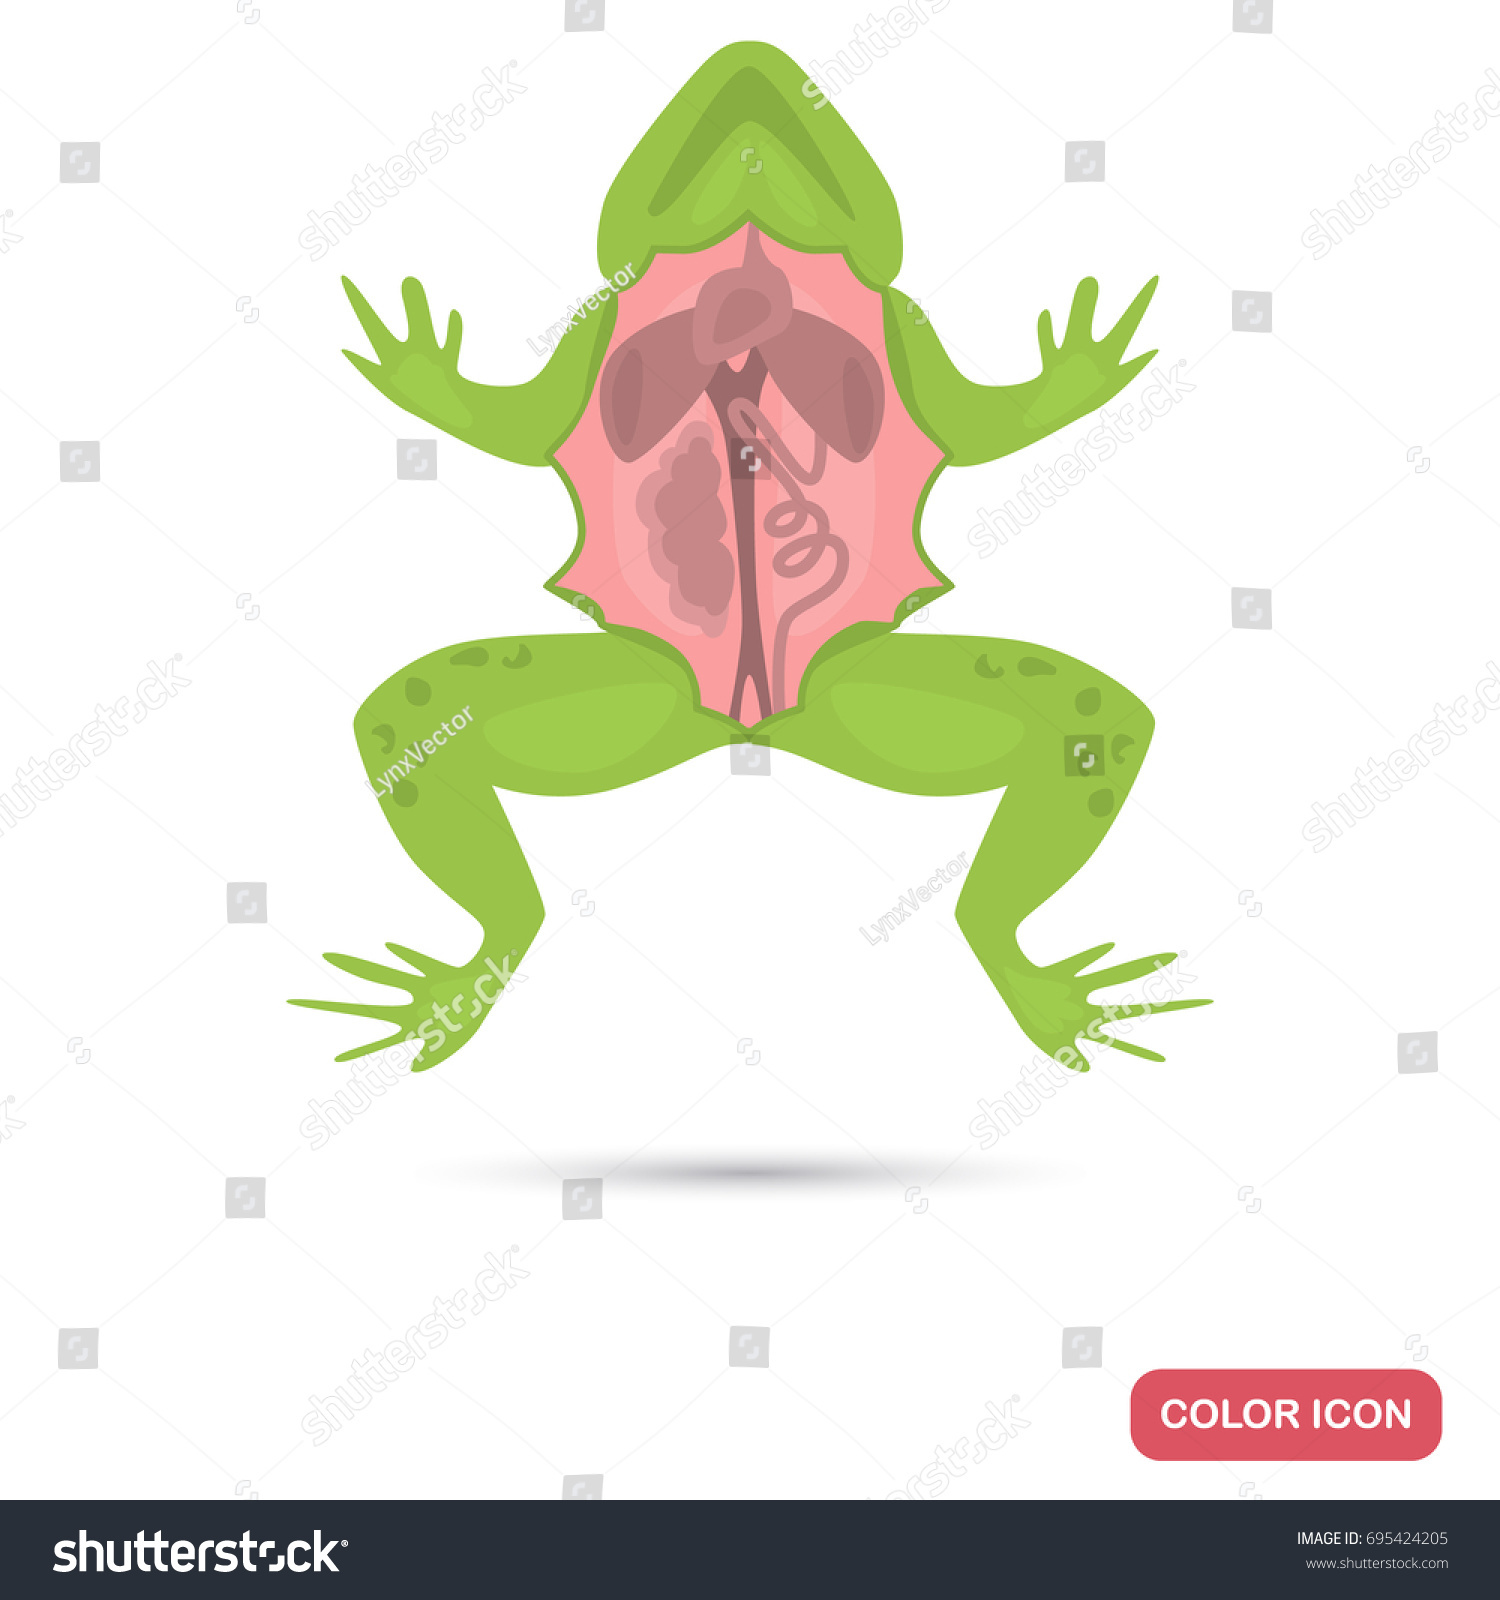 dissected frog color flat icon web stock vector 695424205